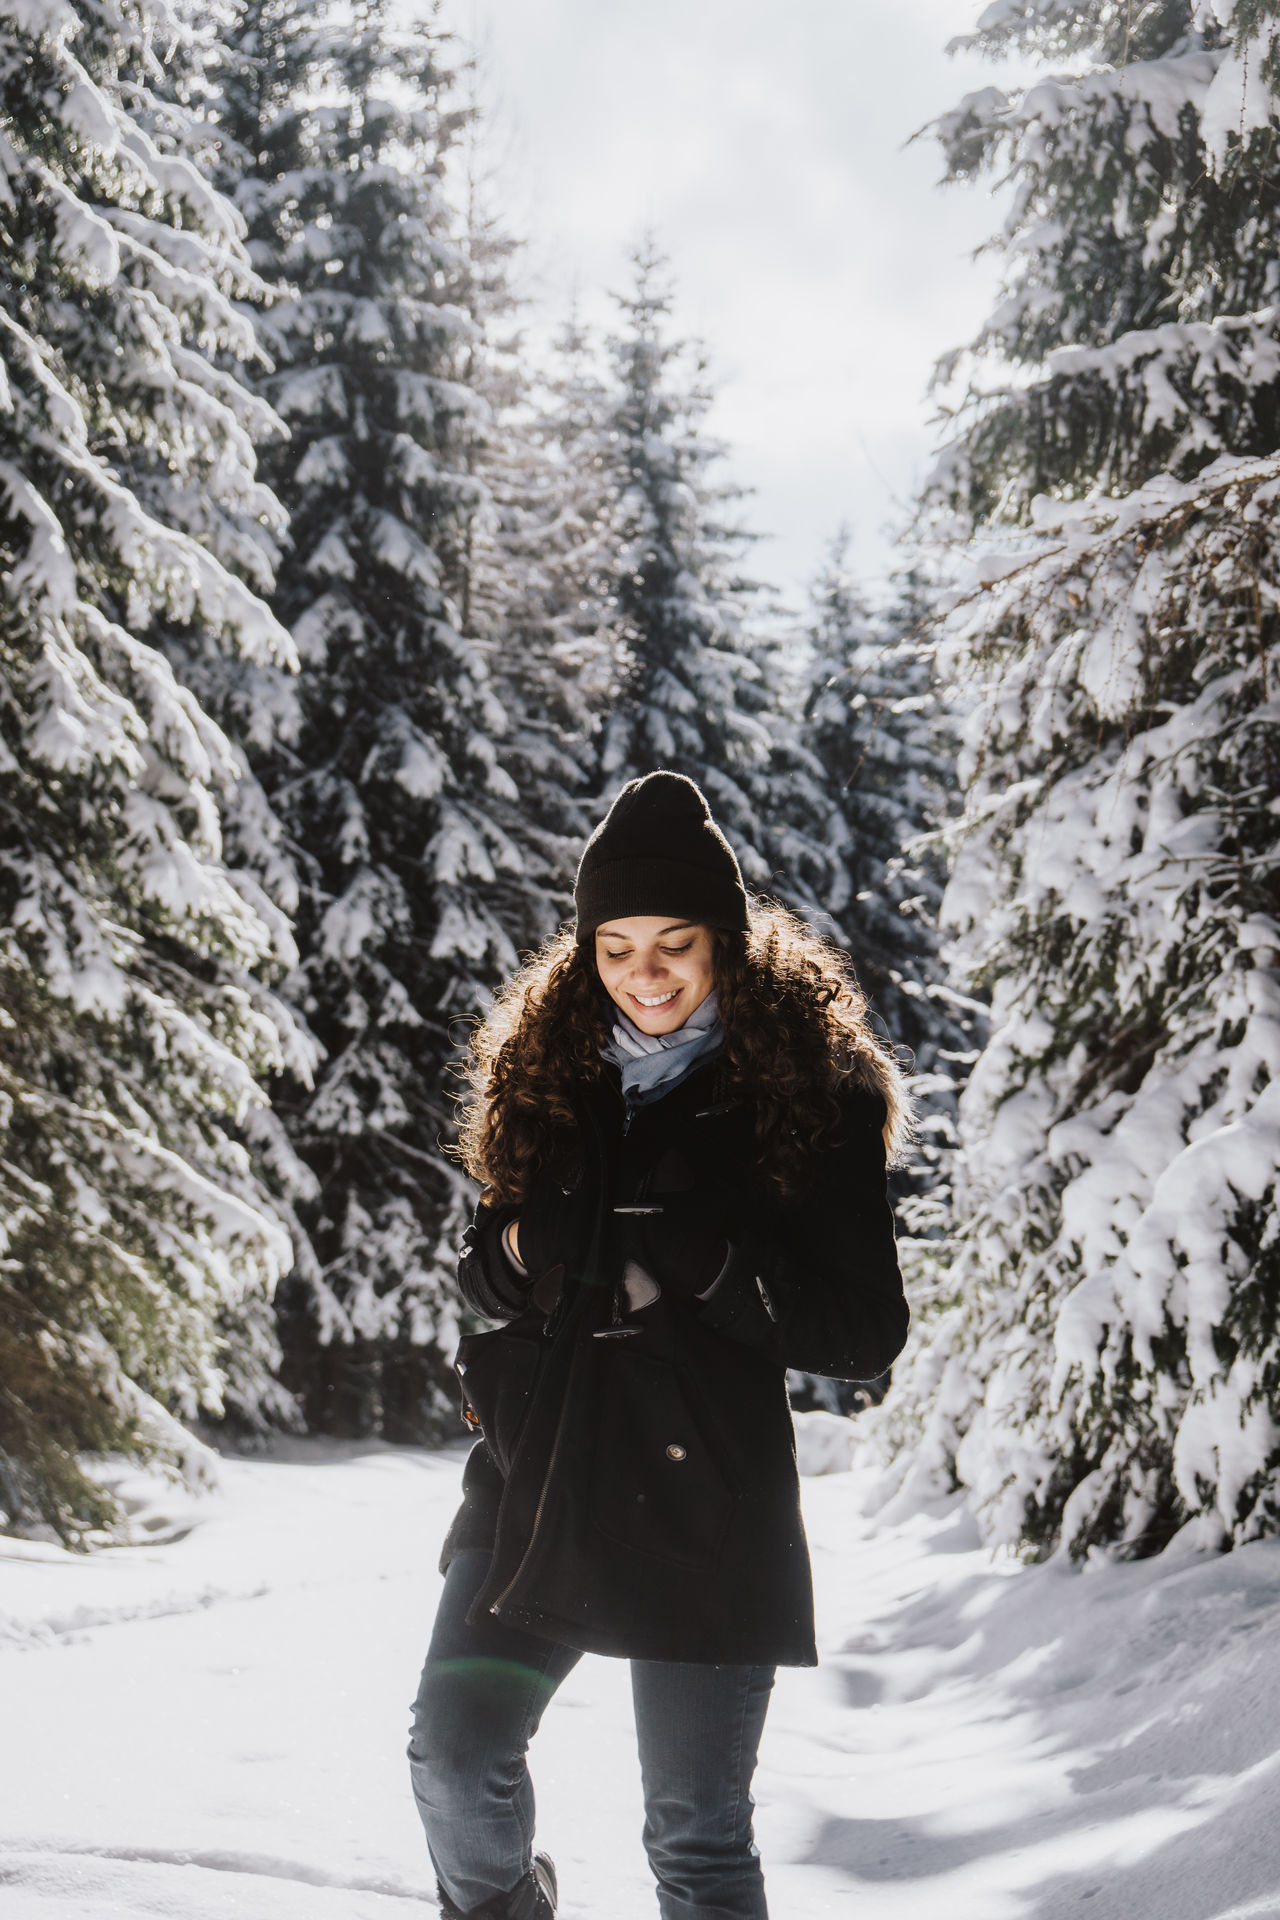 Smiling young woman in warm clothing standing amidst trees on snowy field